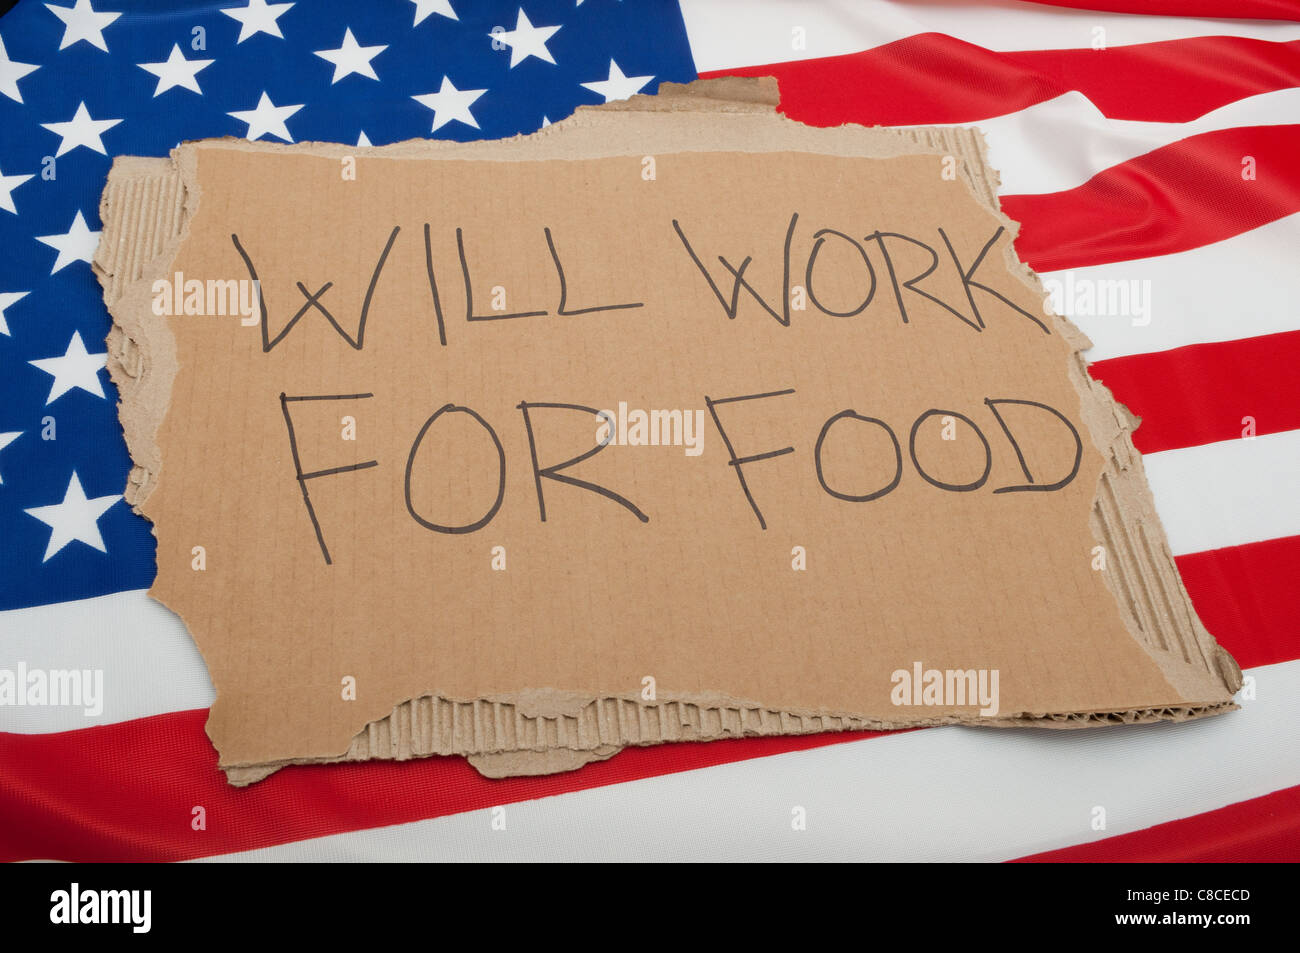 Unemployment in USA - Sign Will Work For Food on Cardboard on American Flag - Stock Image